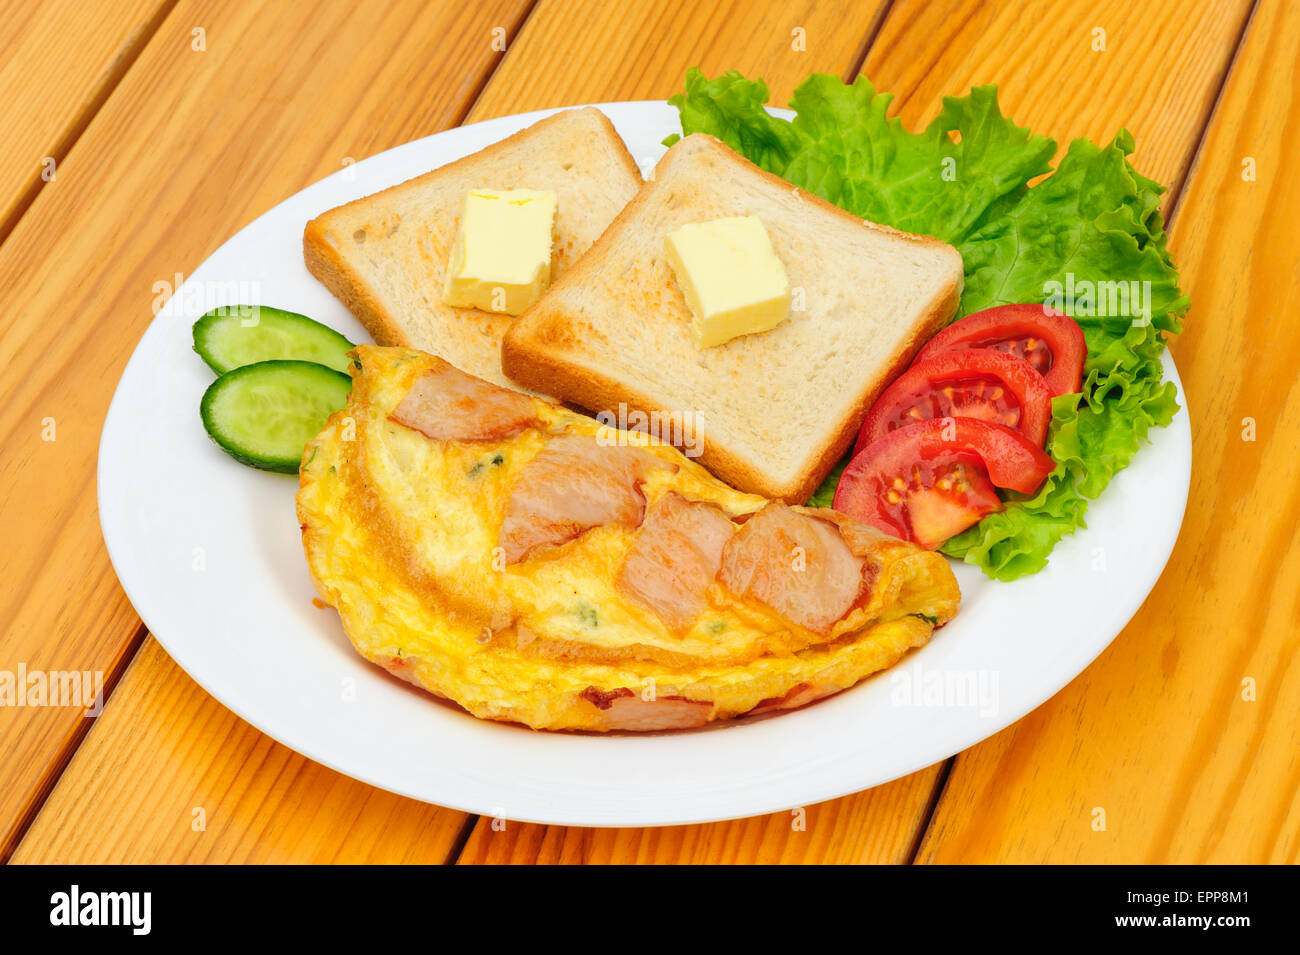 country omelette - Stock Image